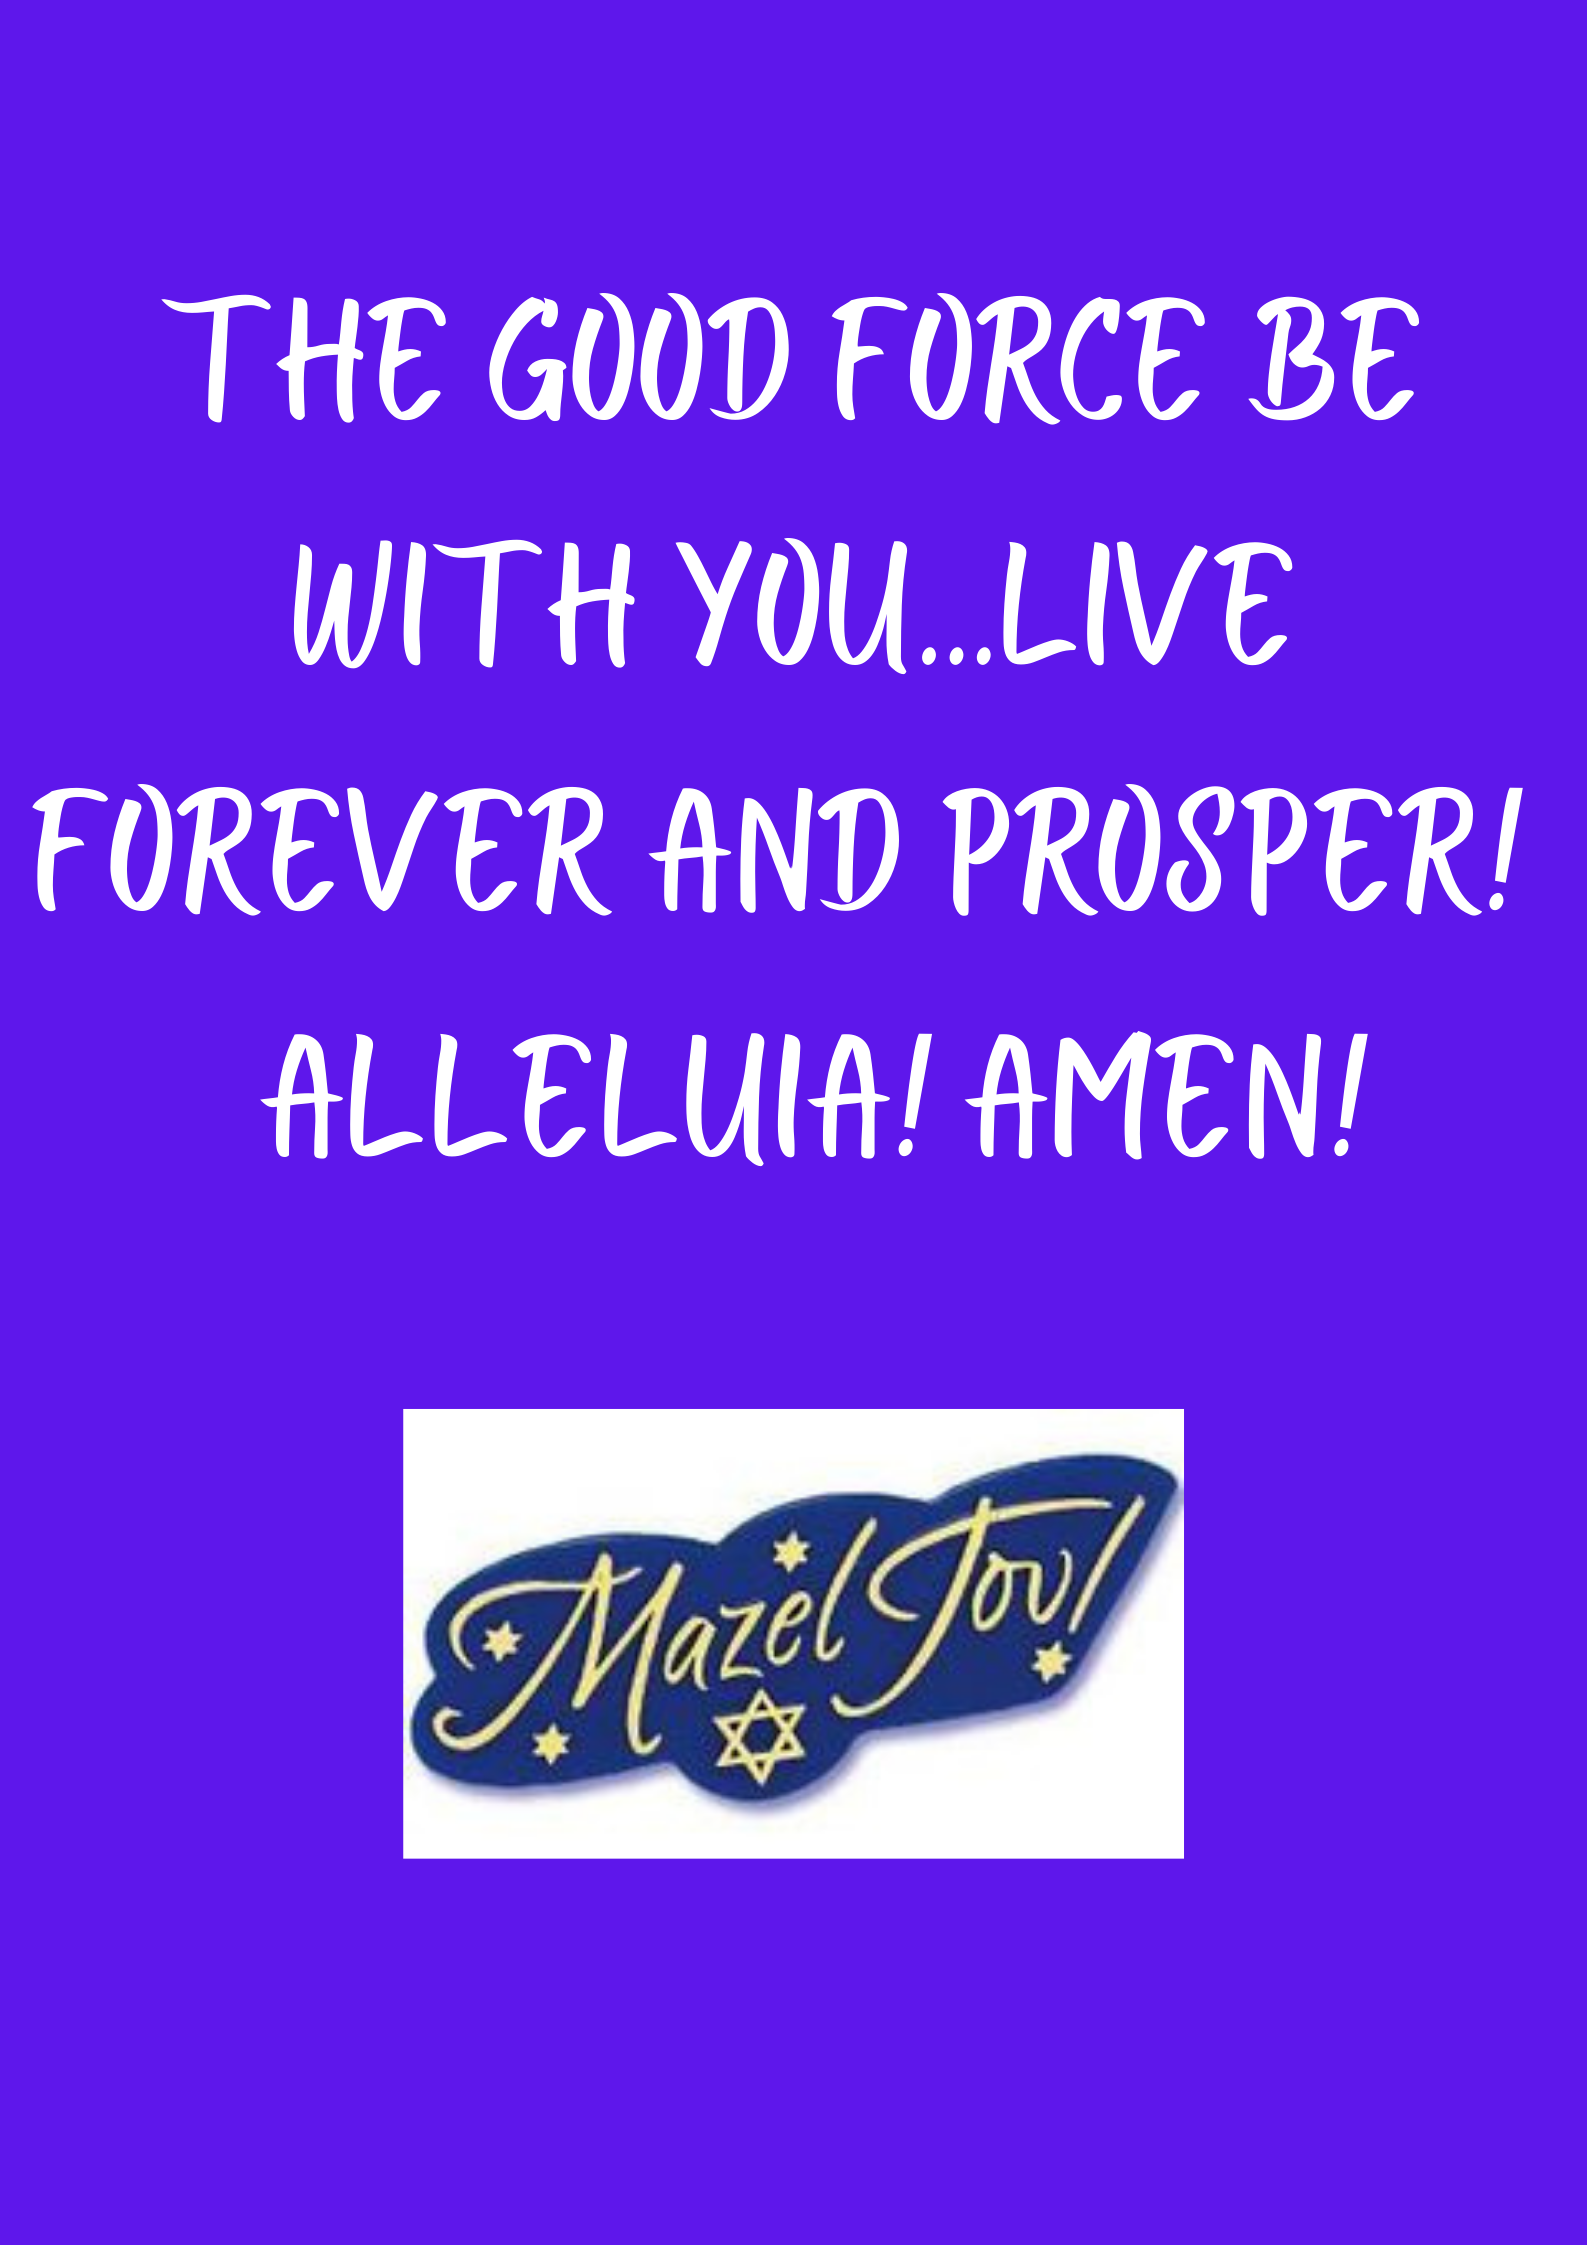 the good force be with you ... live forever and prosper!